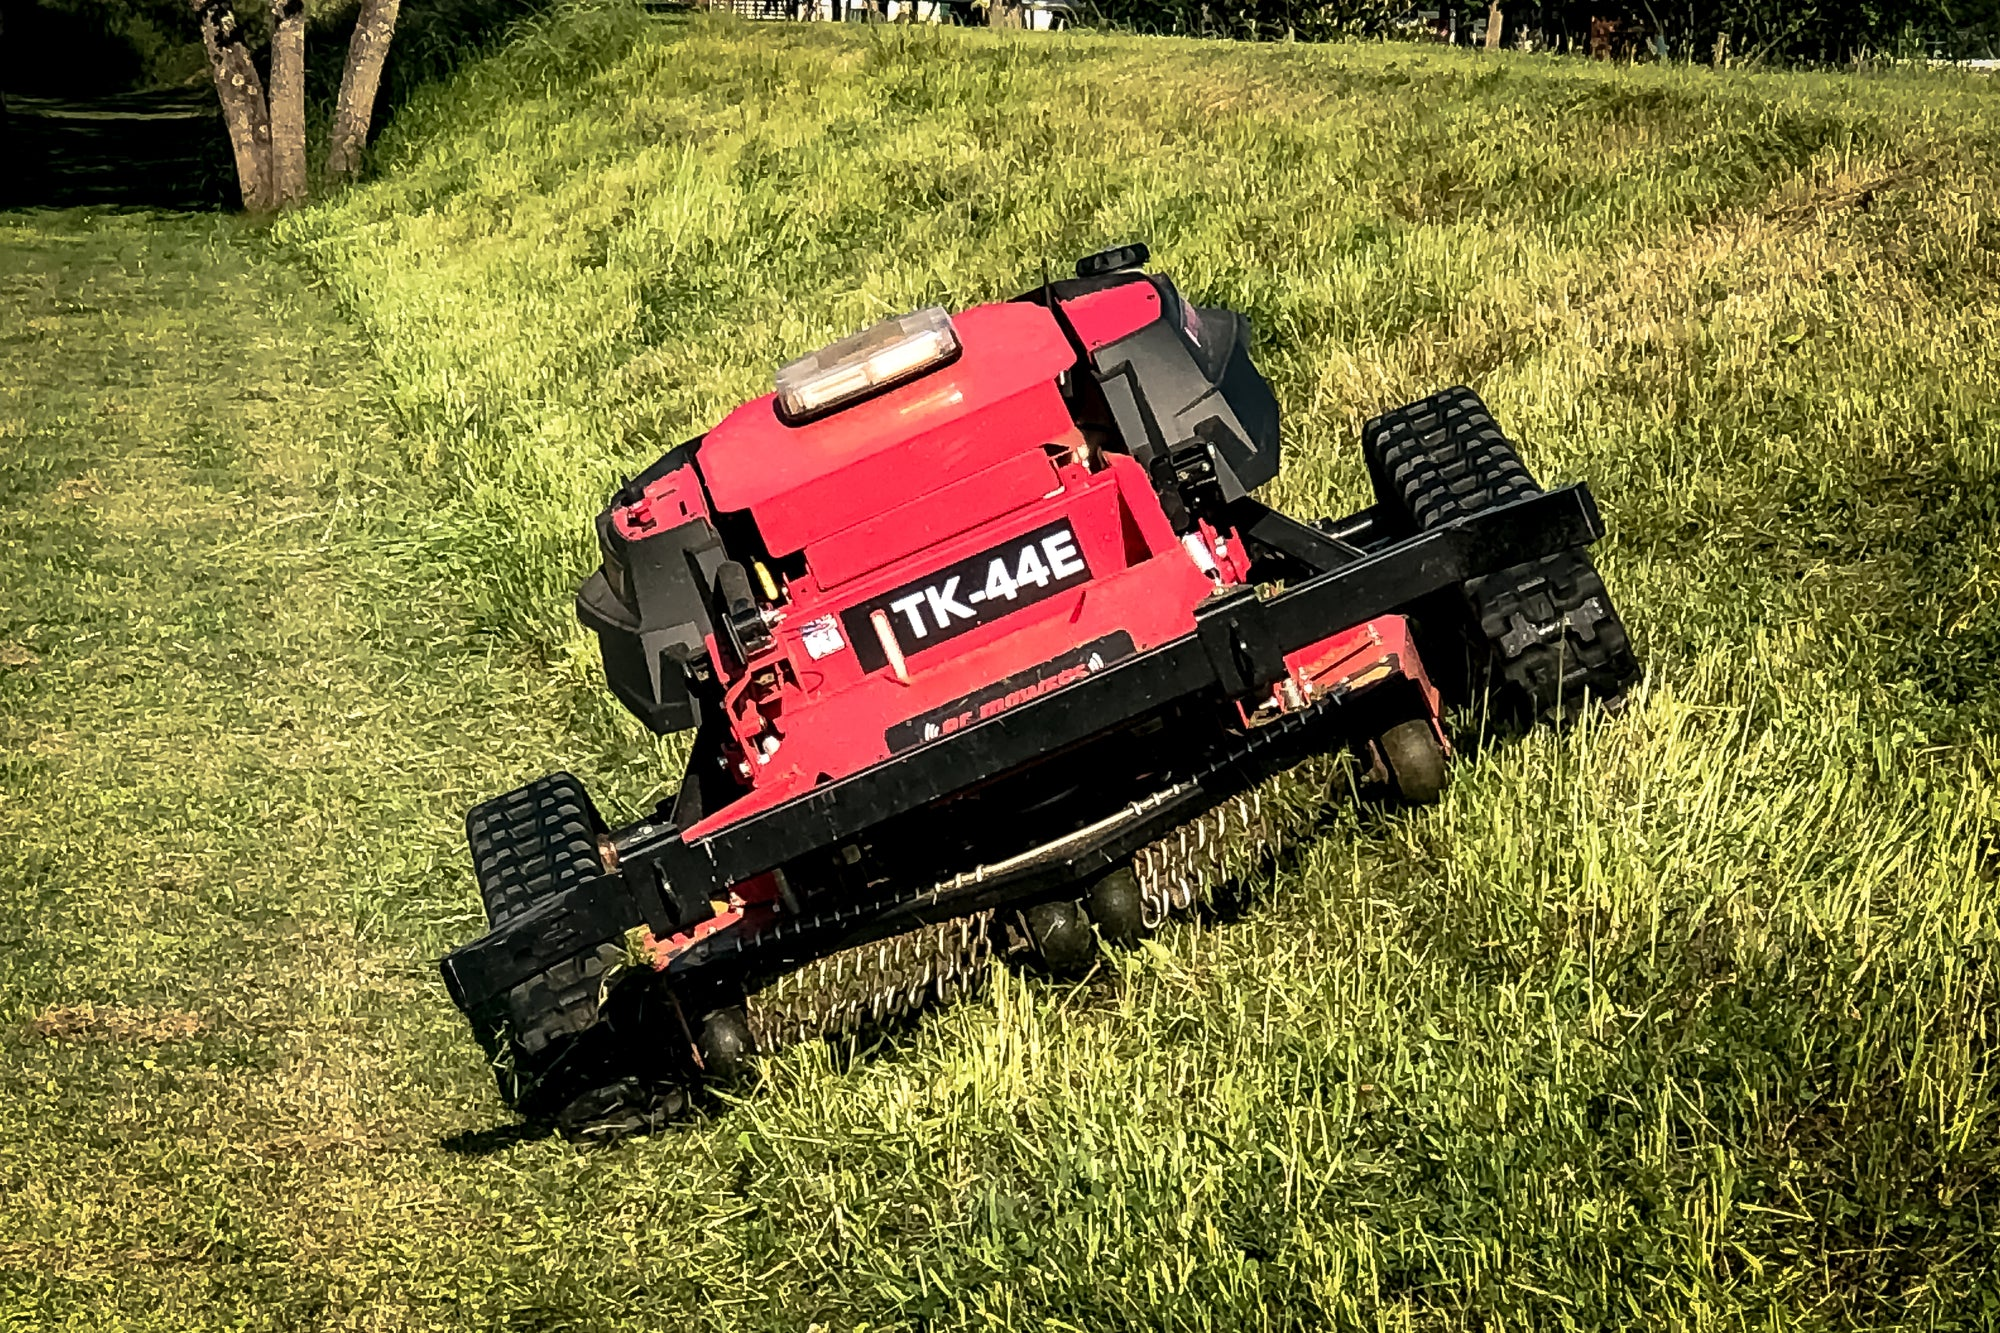 rc mowers tk-44e remote control slope mower